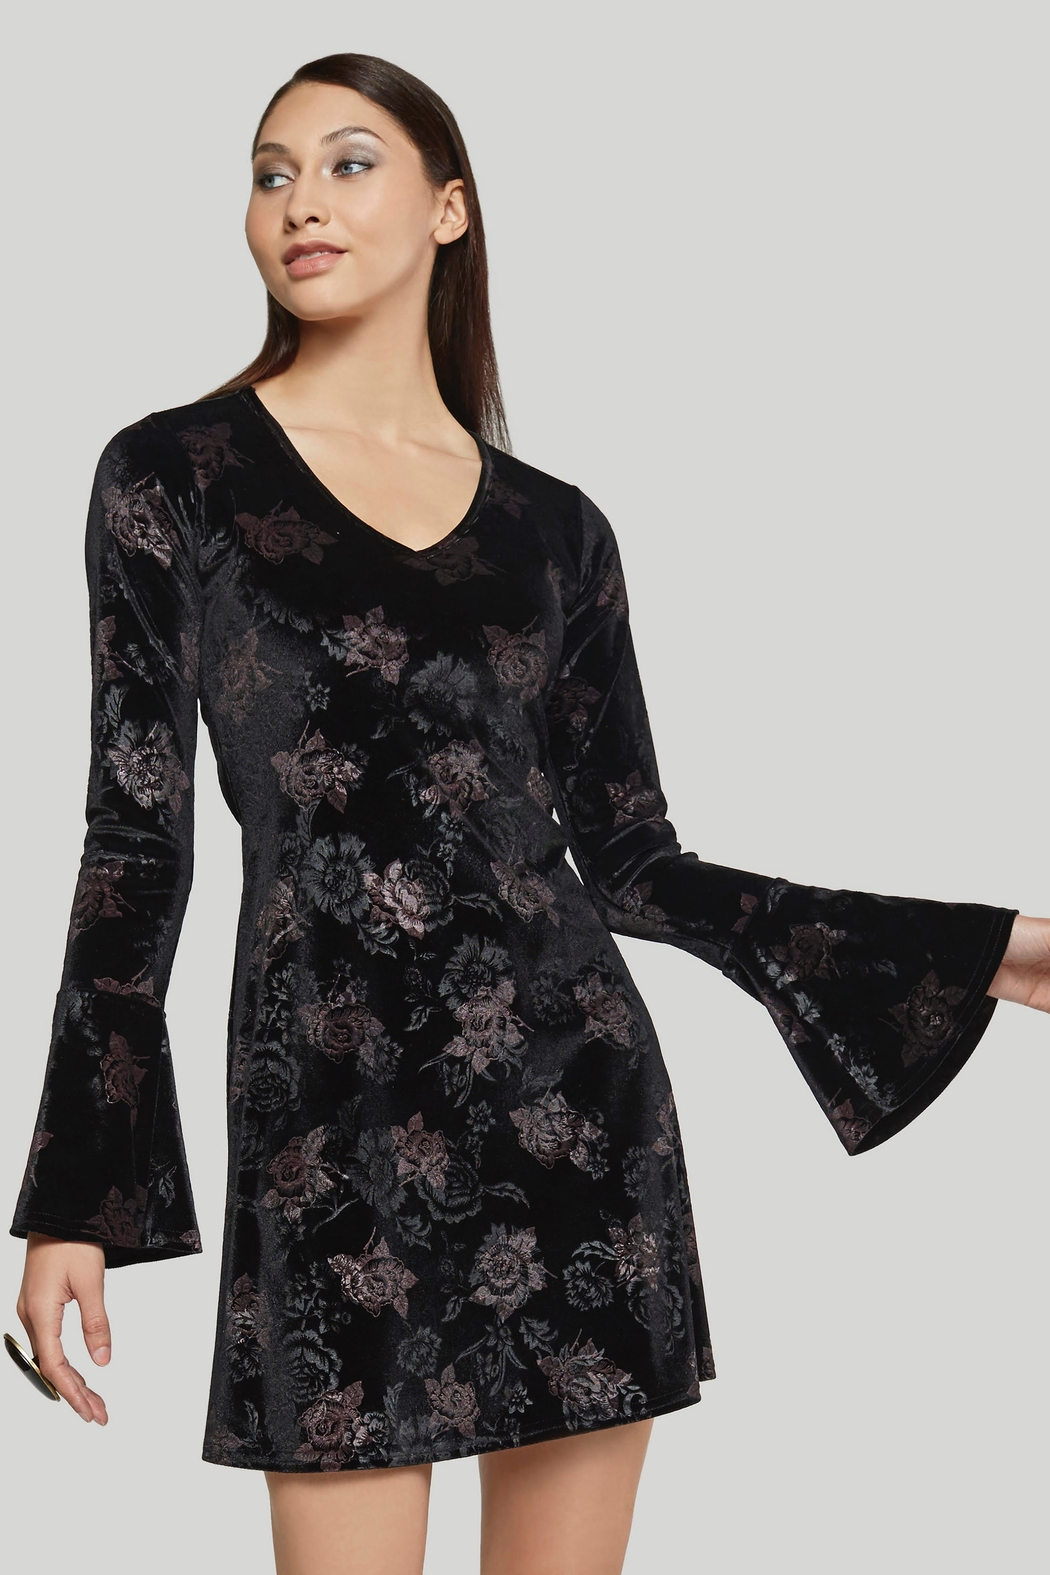 Viereck Shalyce Velvet Floral V Neck Dress - Main Image